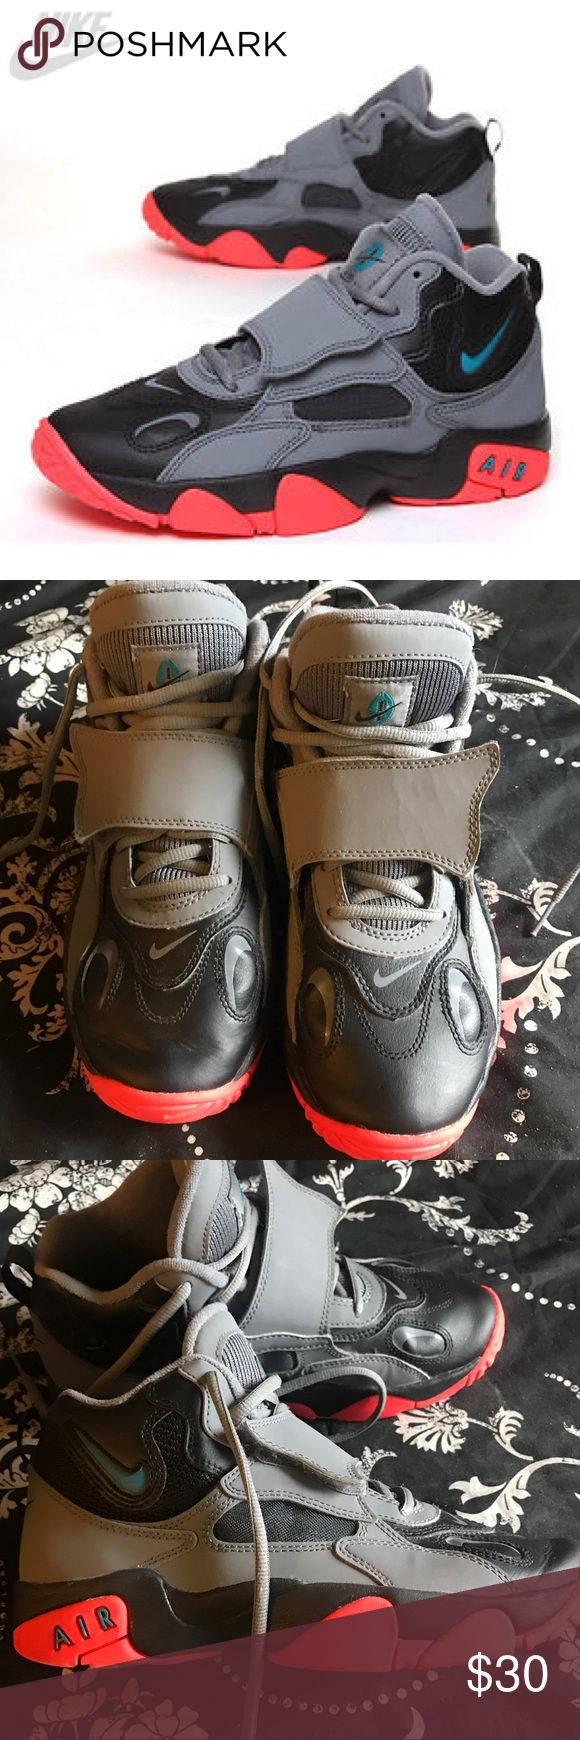 Nike Air Speed Turf kids Basketball Shoes. Nike Air Speed Turf Kid's Gray Black Orange Basketball Shoes Size 6.5Y. Great condition. Nike Shoes Sneakers